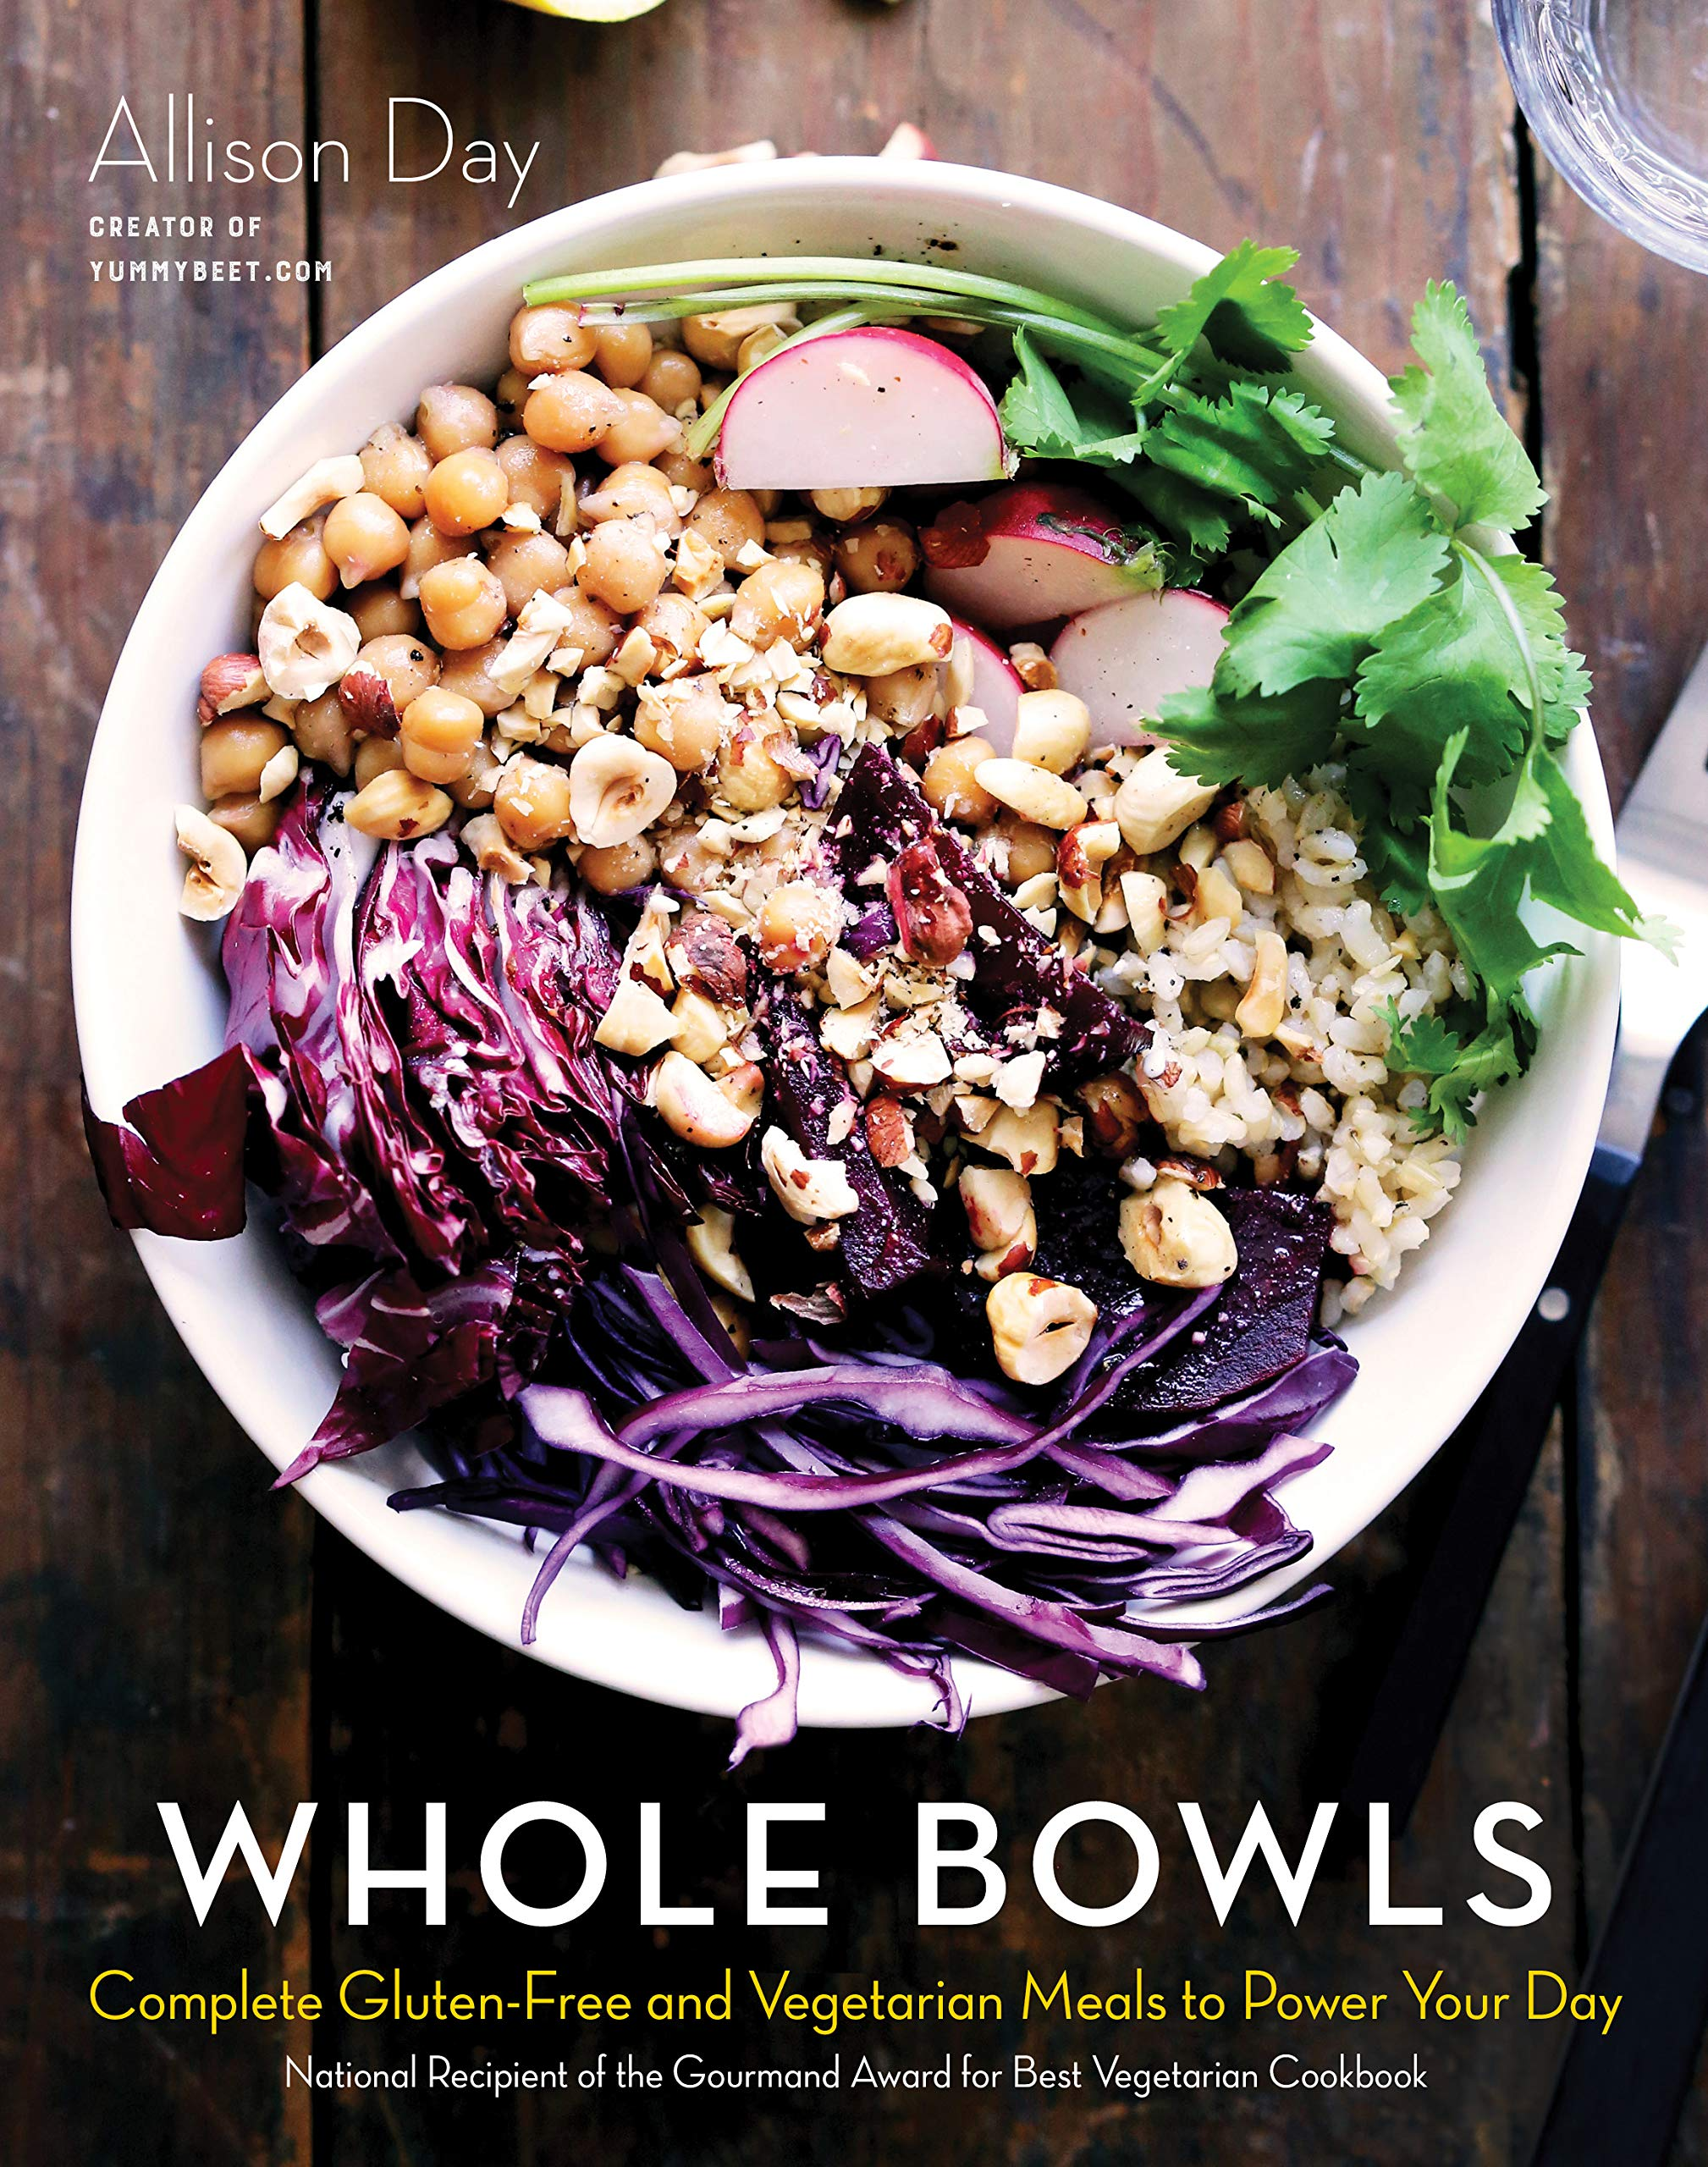 Whole Bowls: Complete Gluten-Free and Vegetarian Meals to Power Your Day by Skyhorse